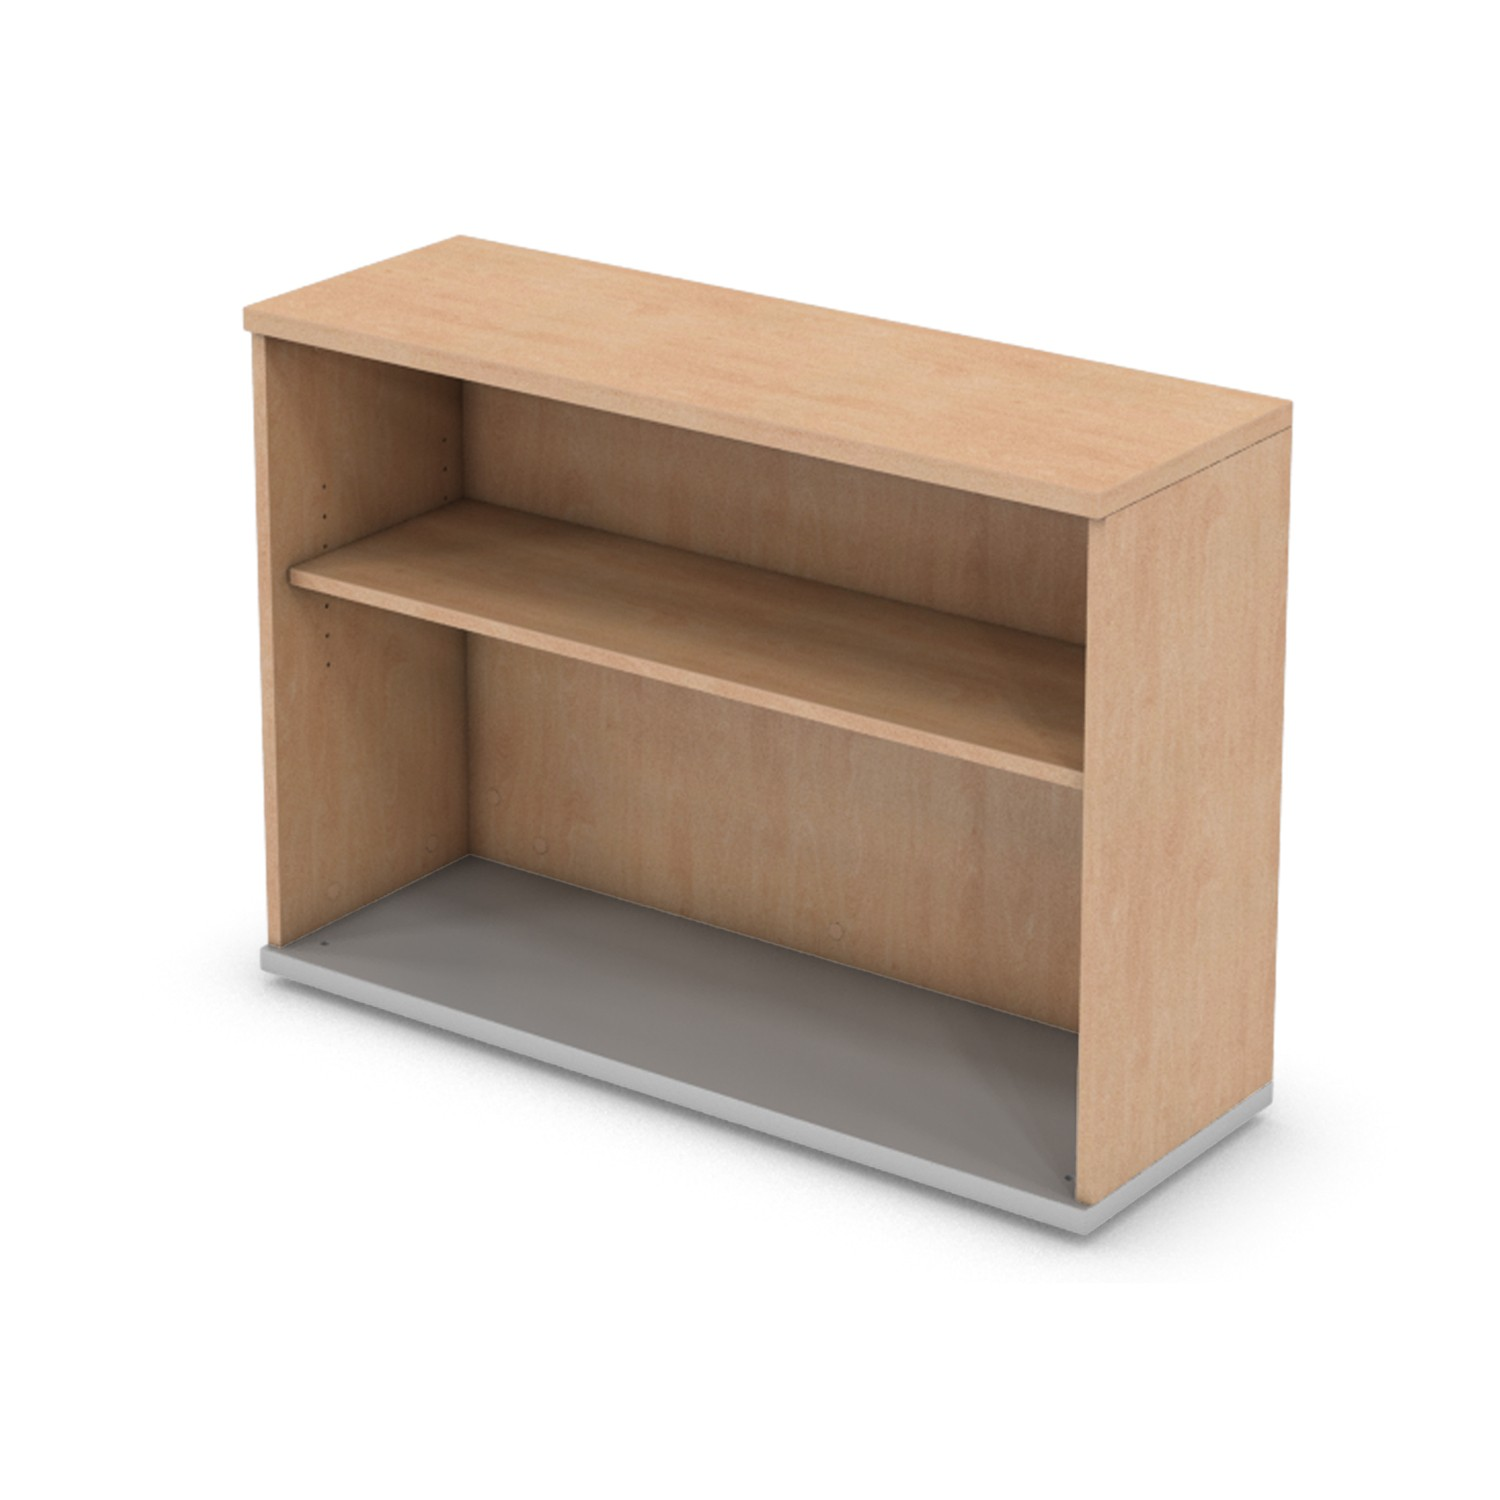 725mm x 1000mm DESK HIGH BOOKCASE